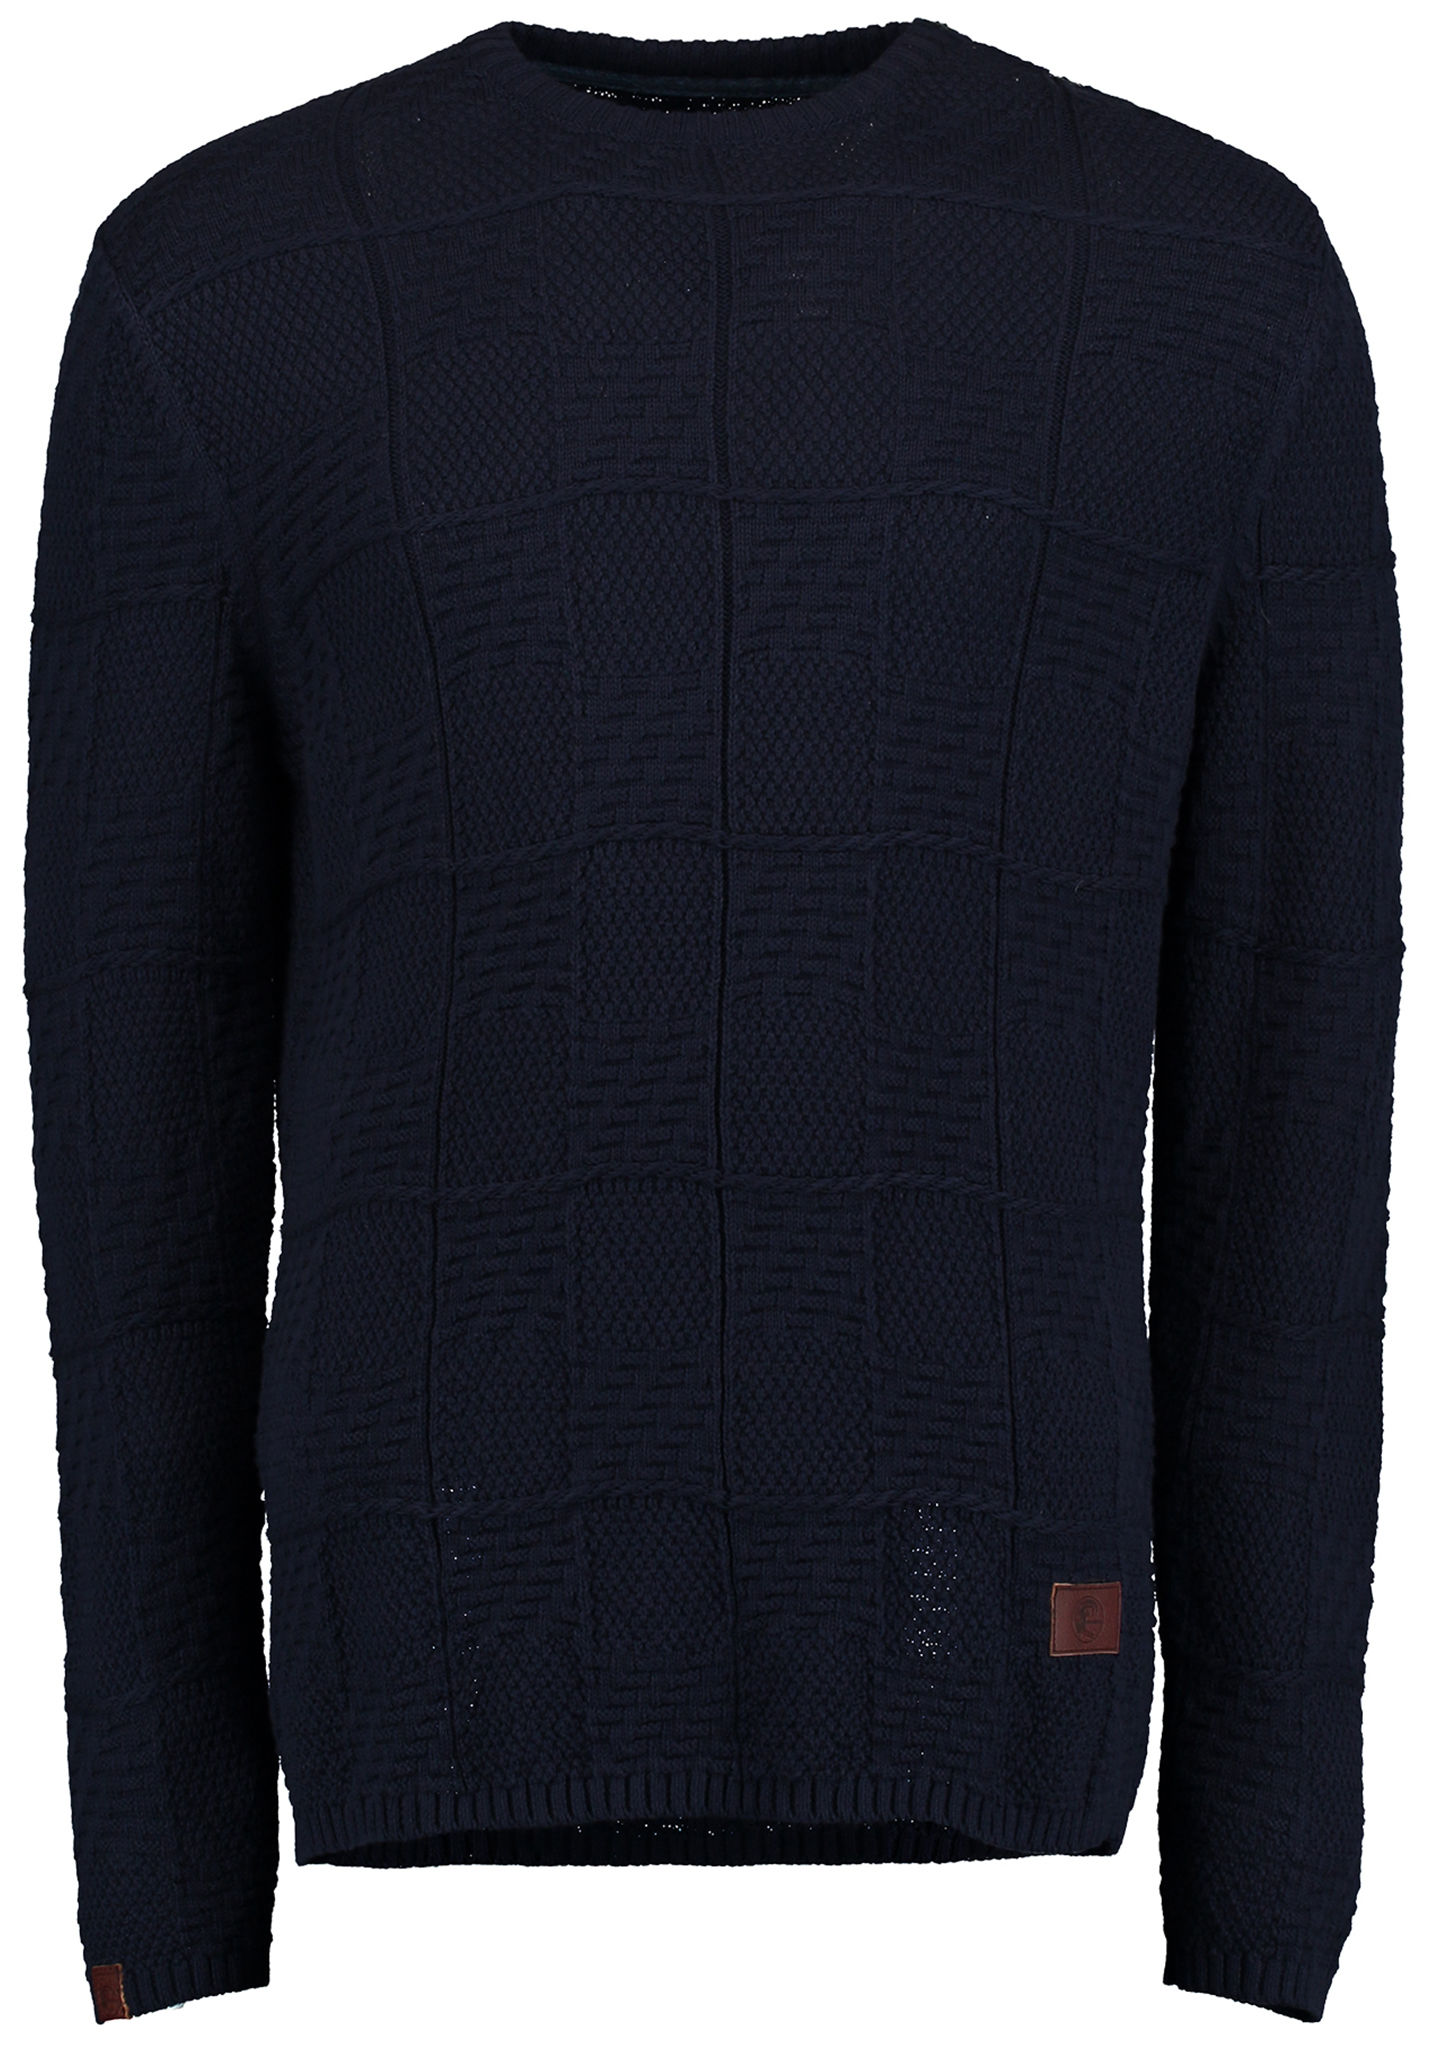 info for 3038a fc7e5 O'Neill Fancy Up - Knitted Pullover for Men - Blue